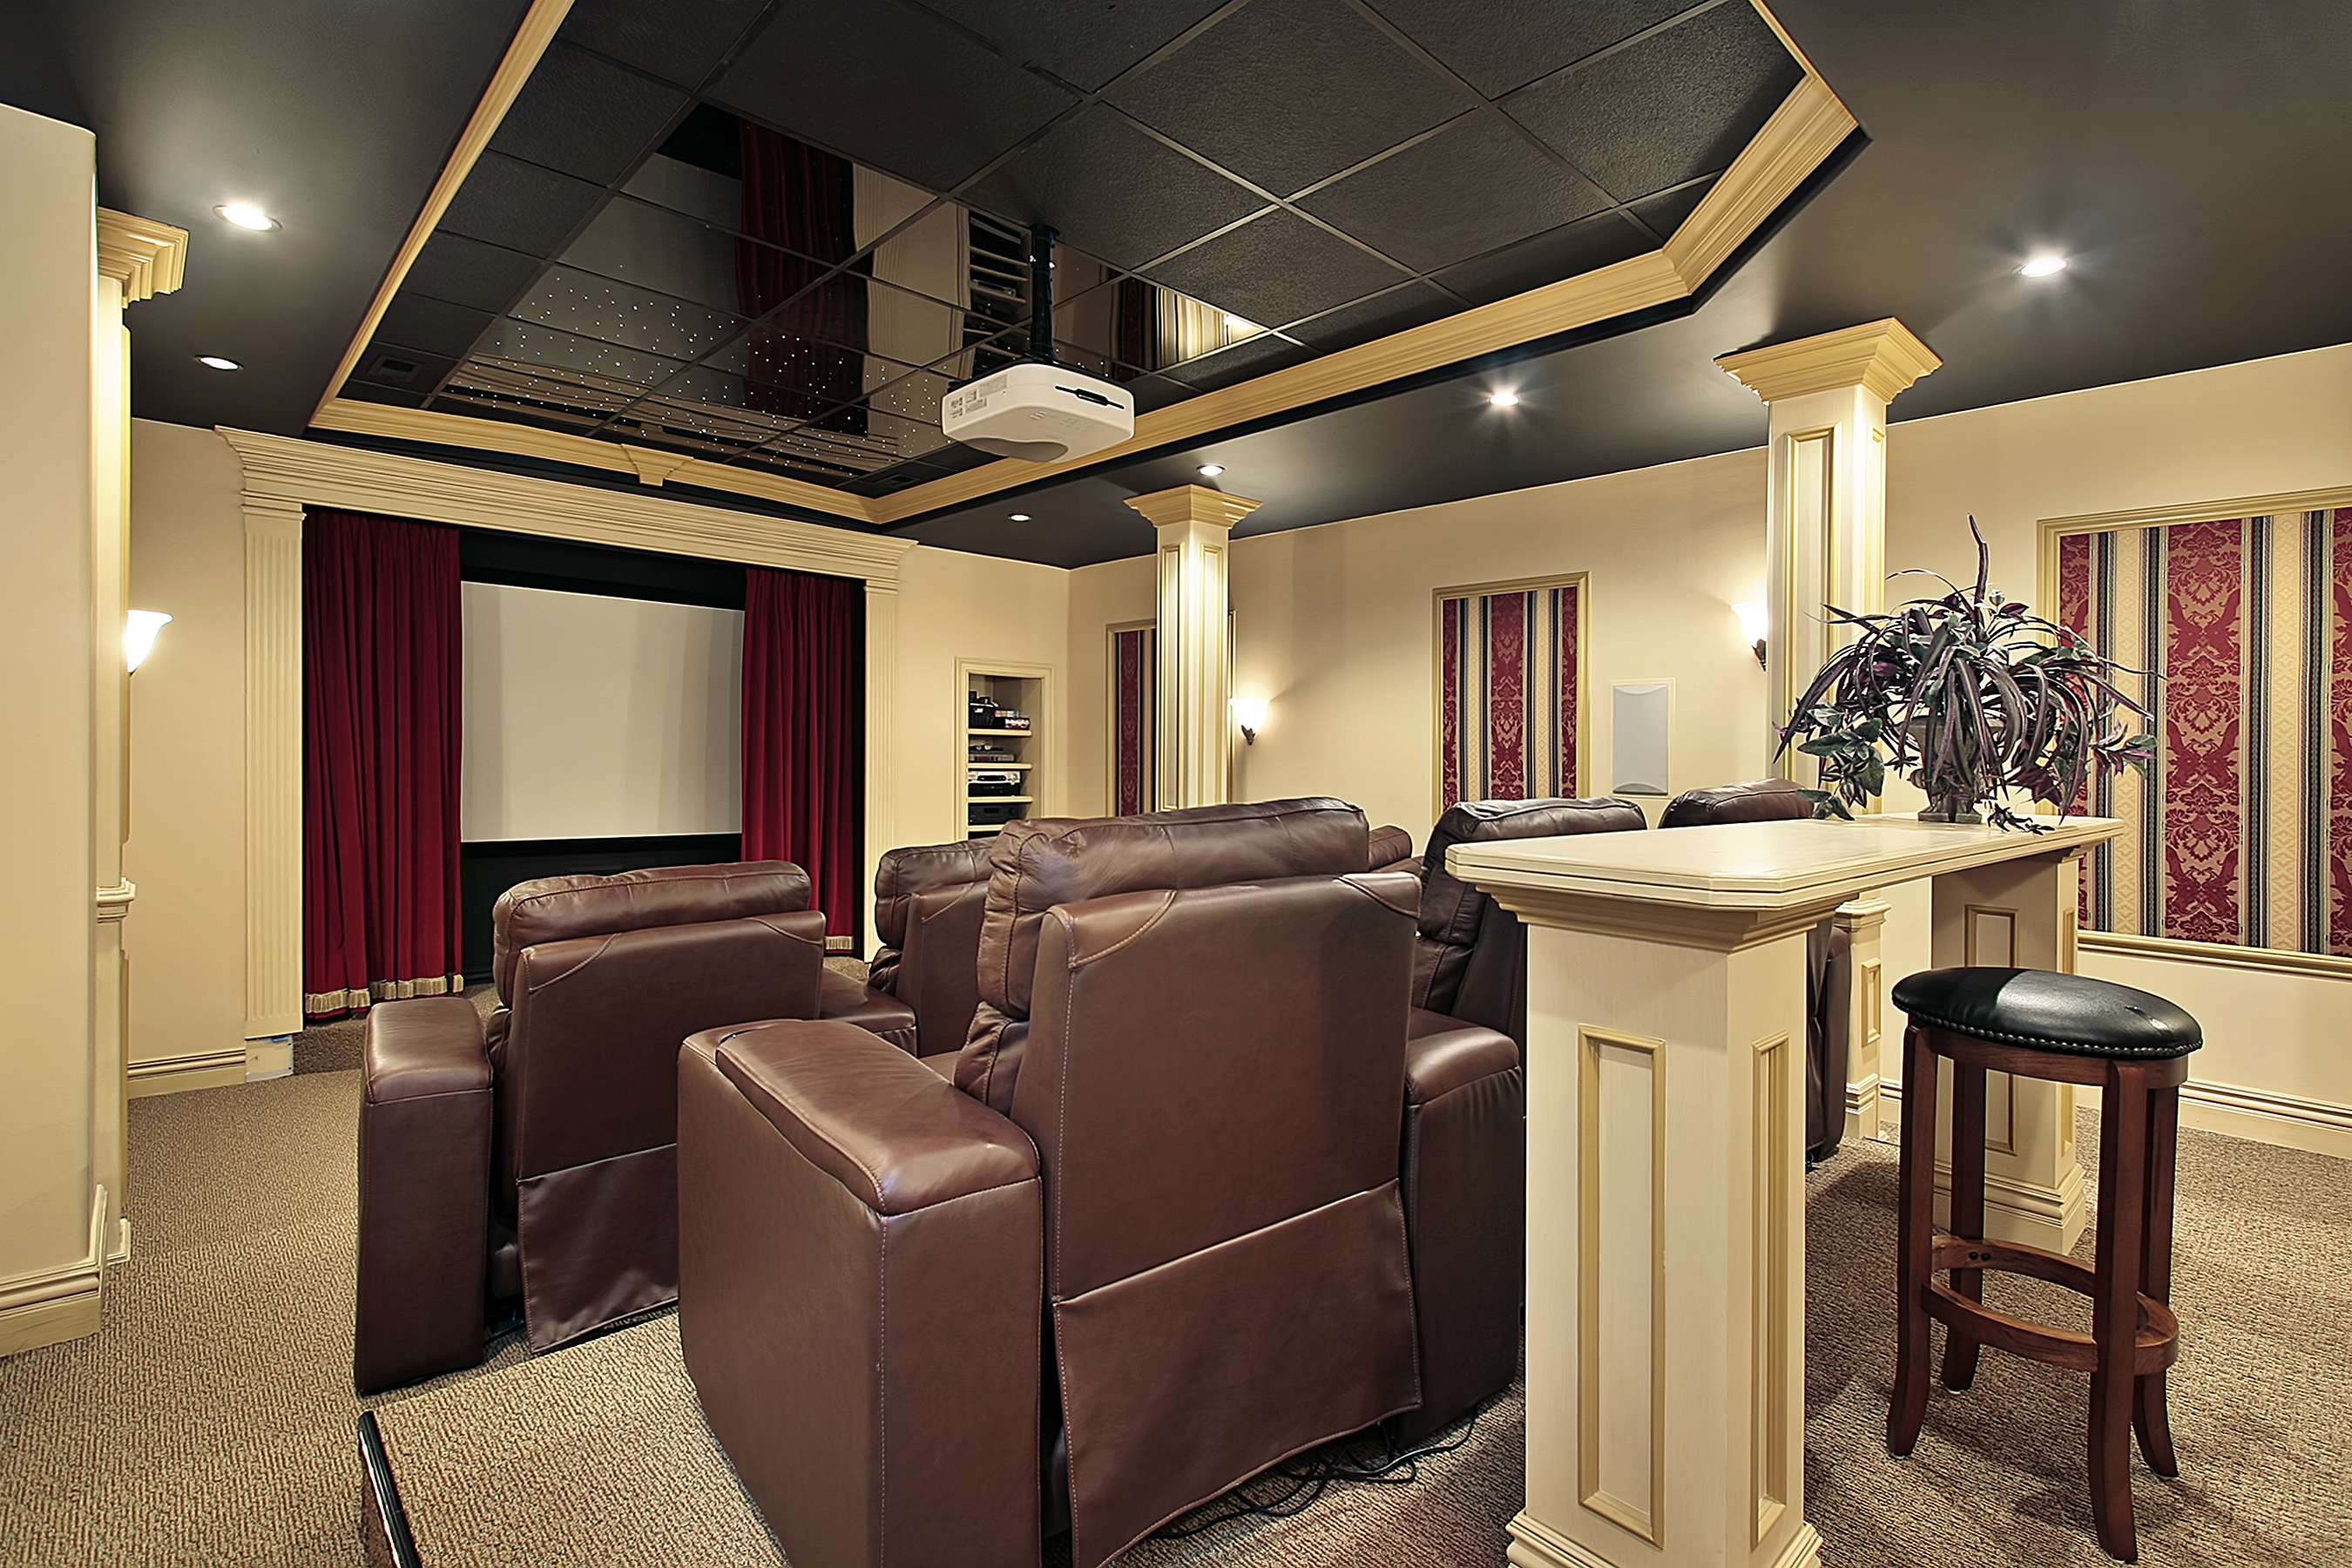 How Immersive Audio Transforms Your Home Theater Experience